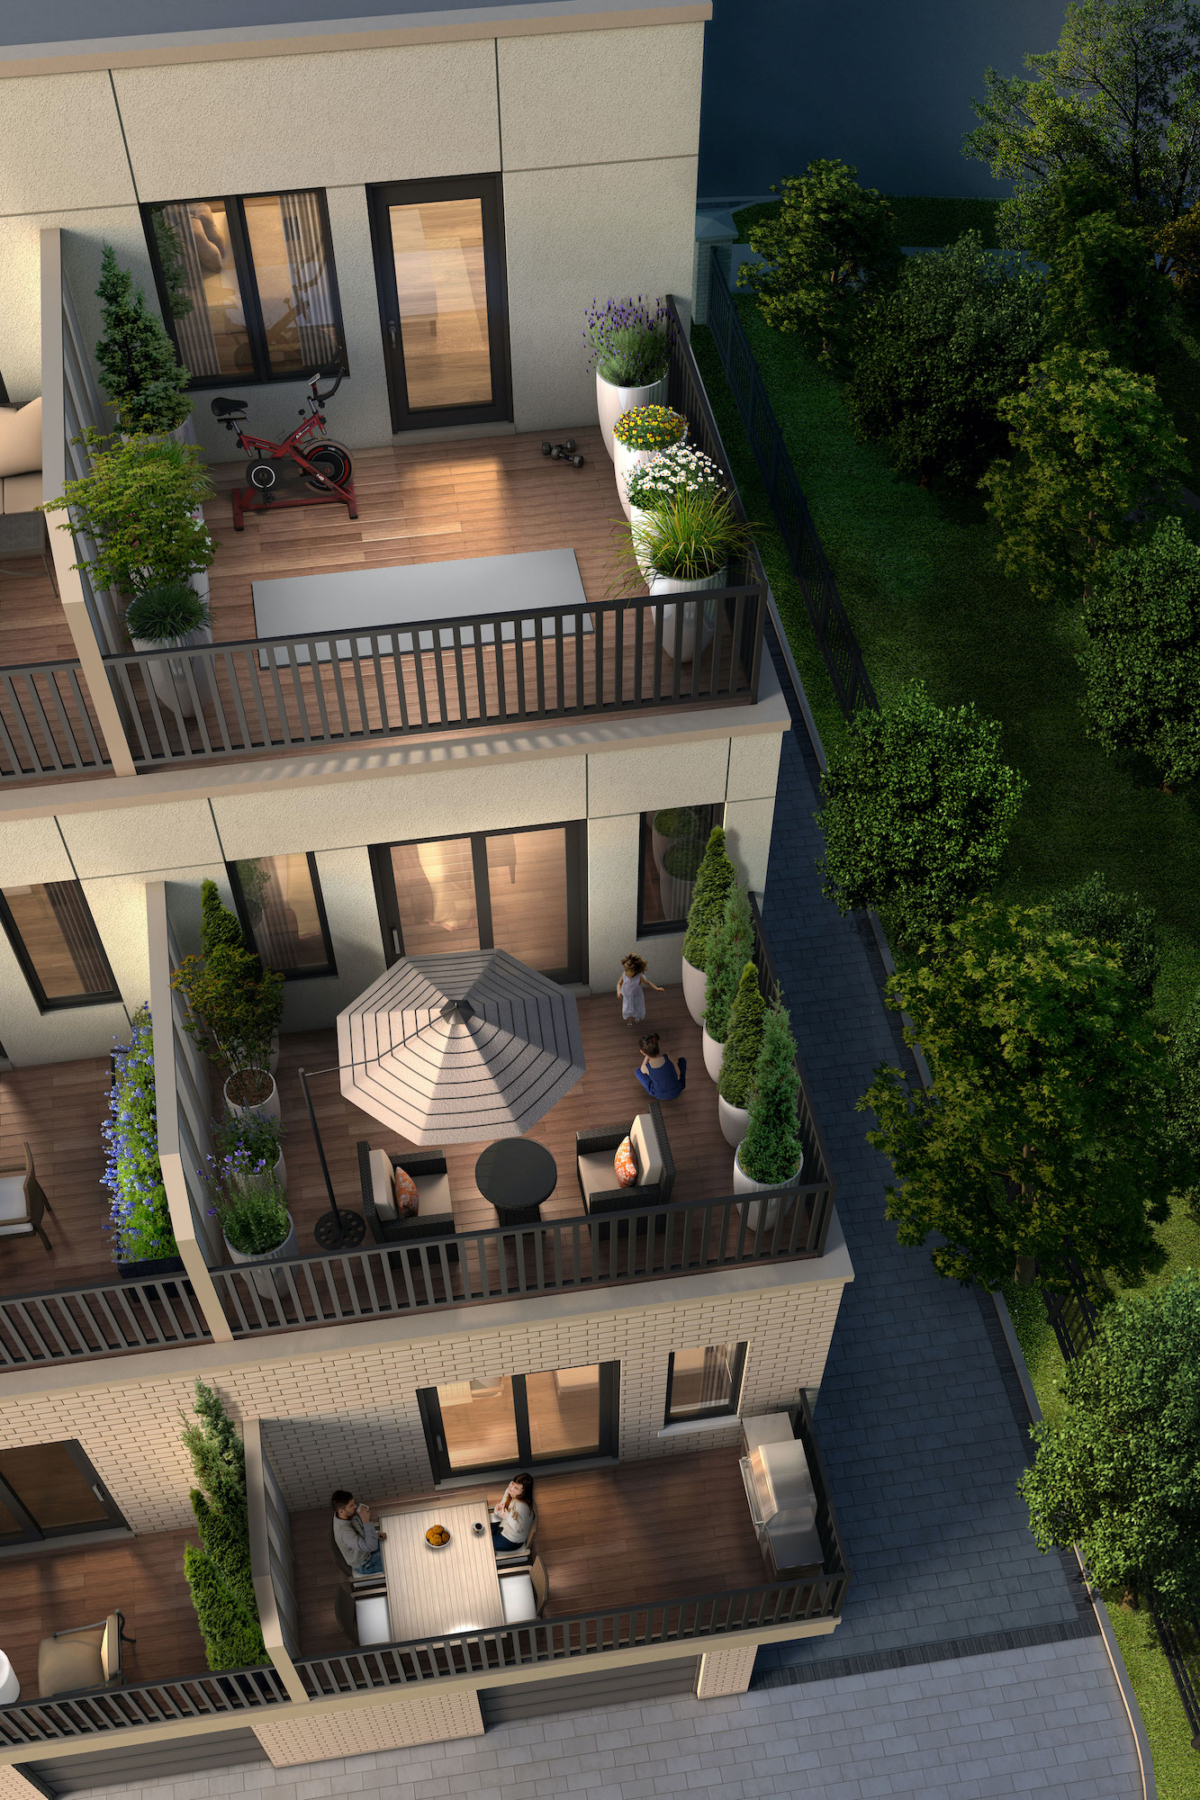 Rendering of Bartley Towns balcony from aerial point of view